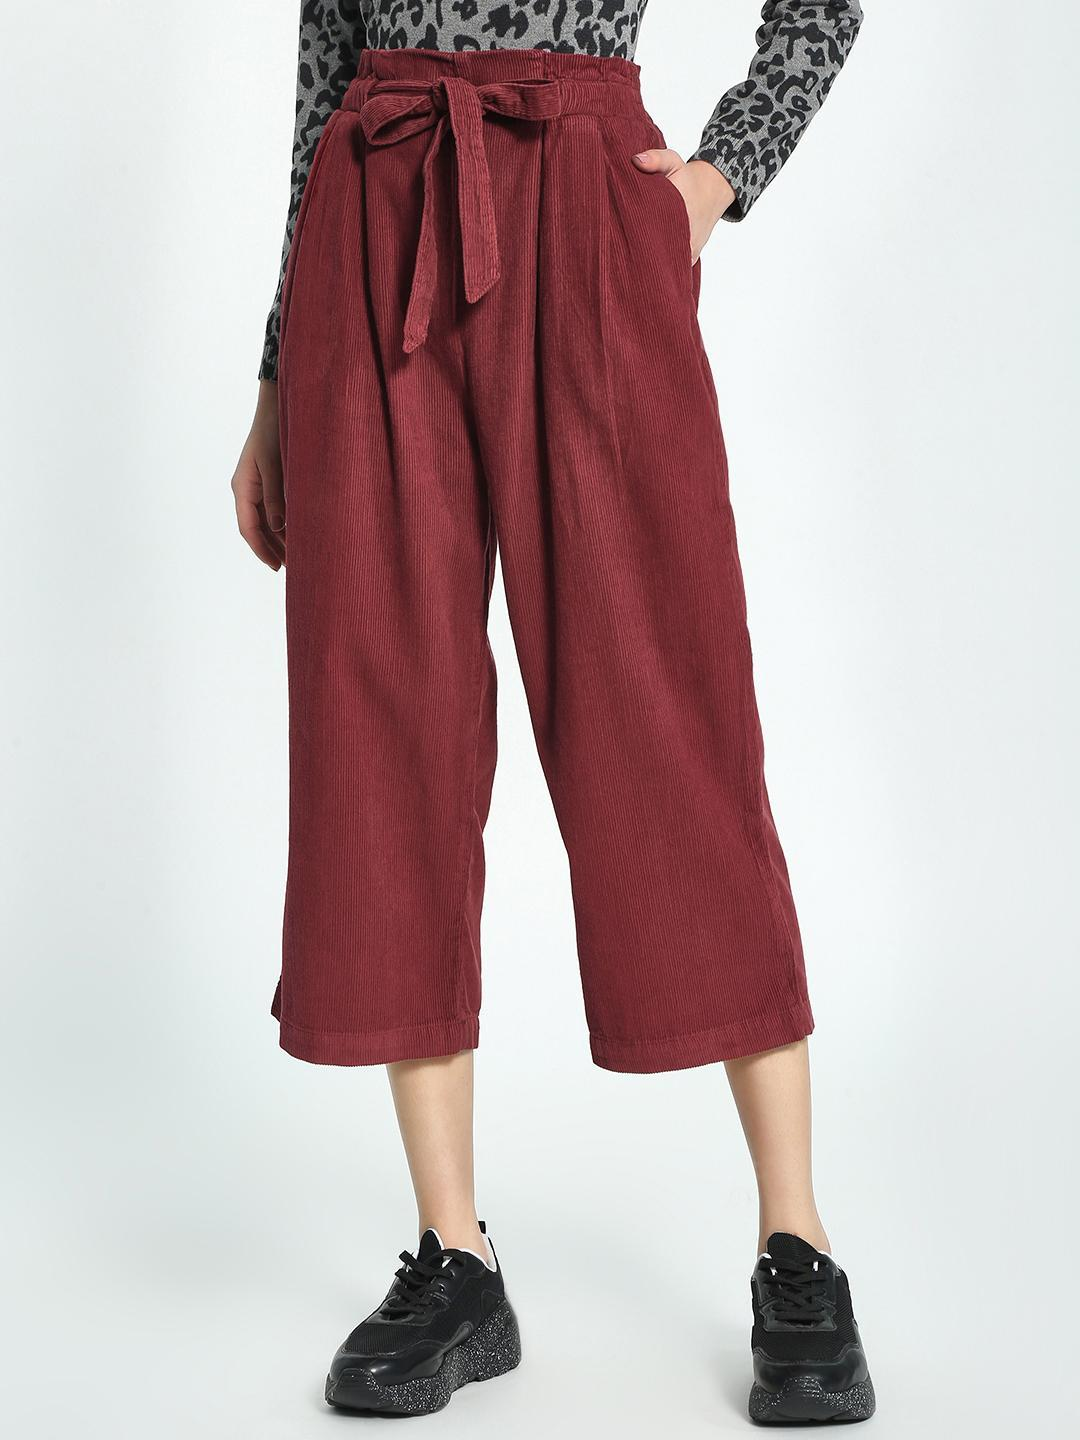 Blue Saint Maroon Corduroy Tie-Up Cropped Trousers 1